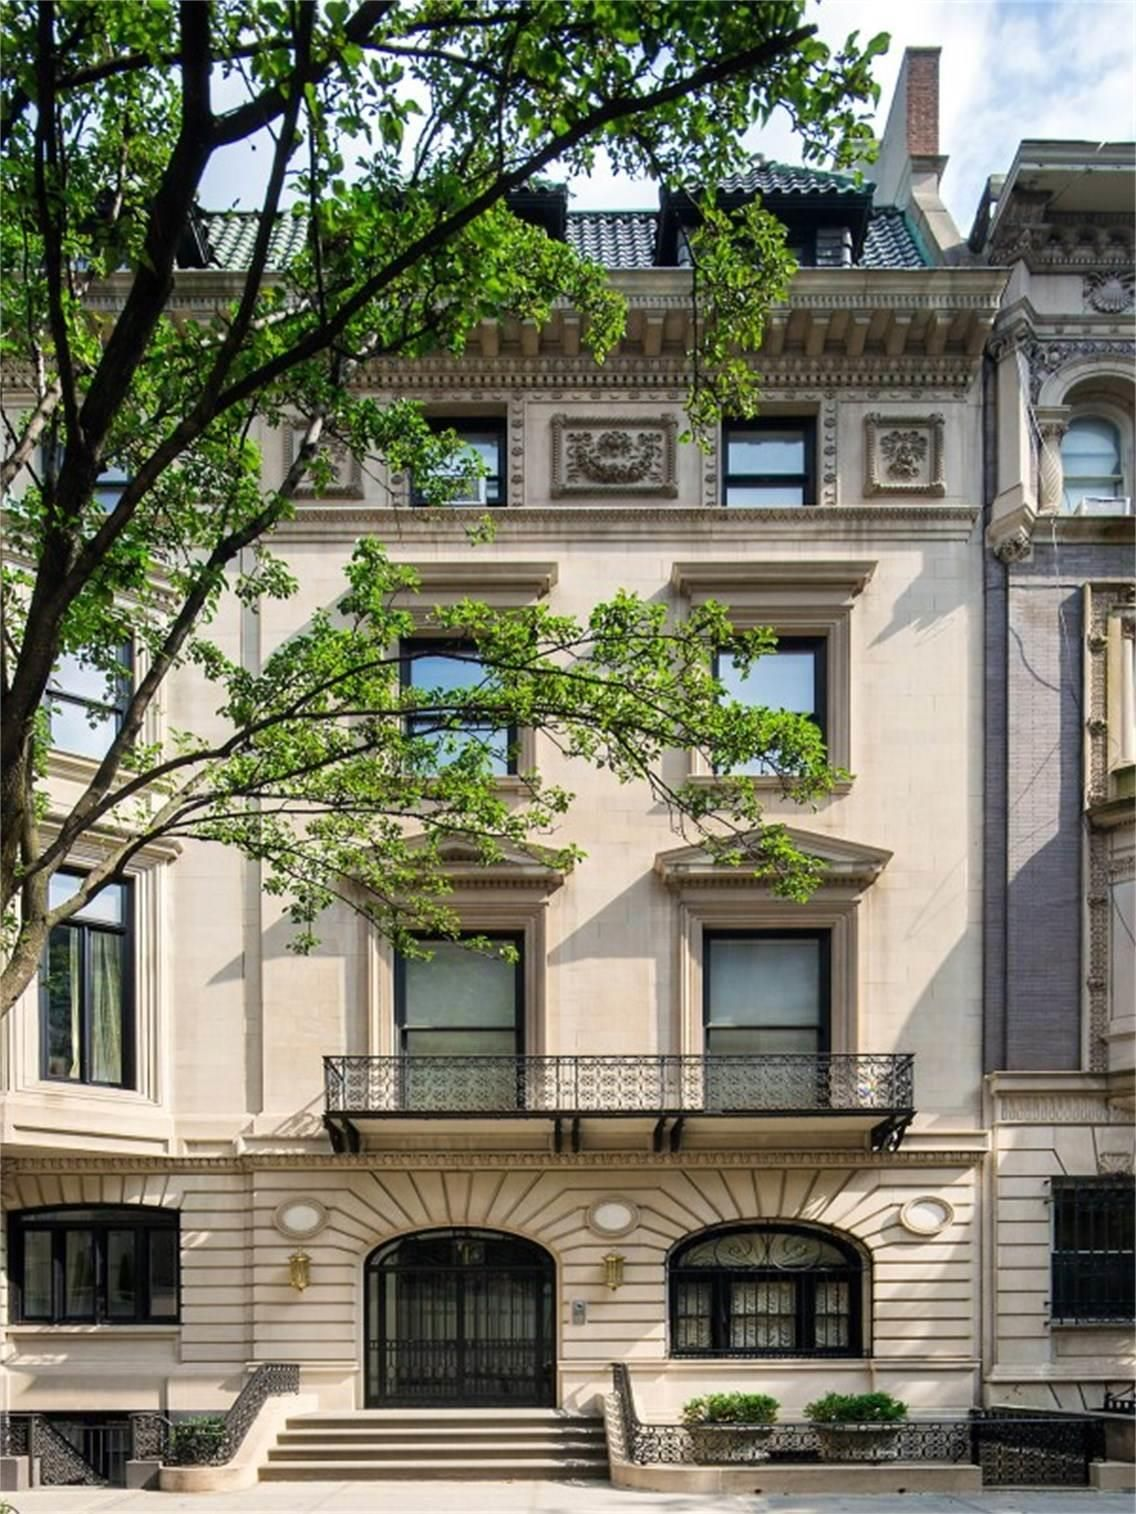 Residential real estate news from The New York Times, covering the five boroughs and beyond.